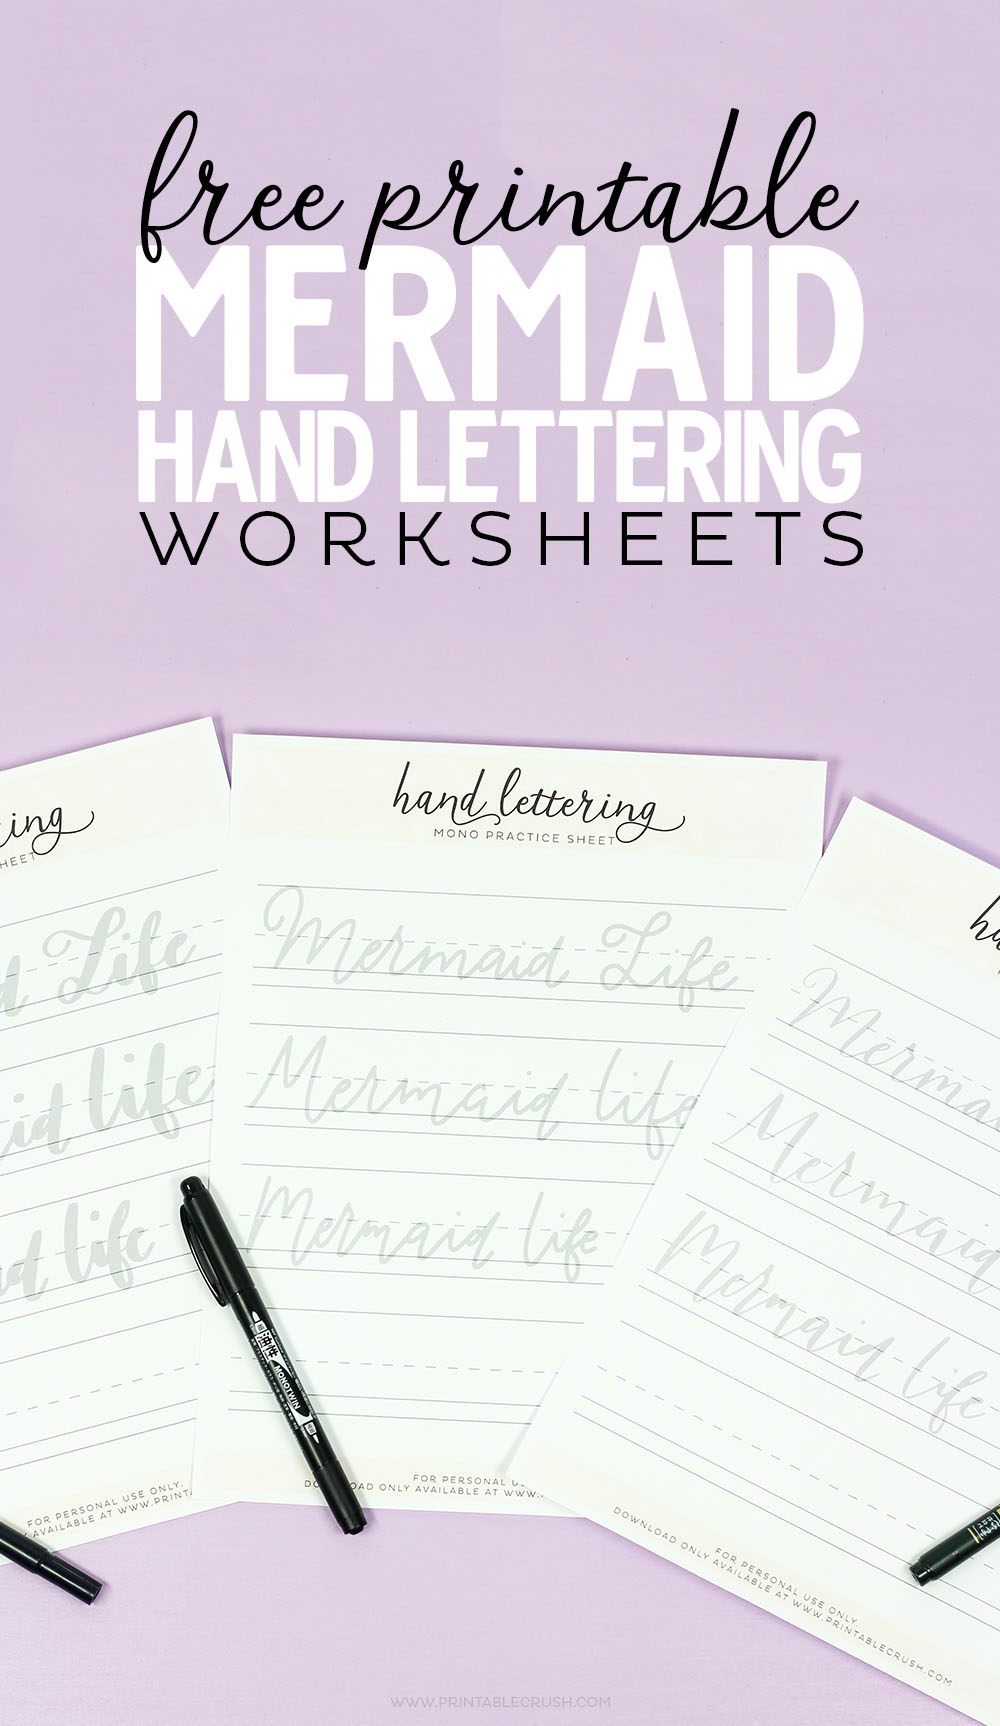 3 FREE Mermaid Hand Lettering Worksheets in 3 styles. Use with your favorite Tombow lettering markers or pens.